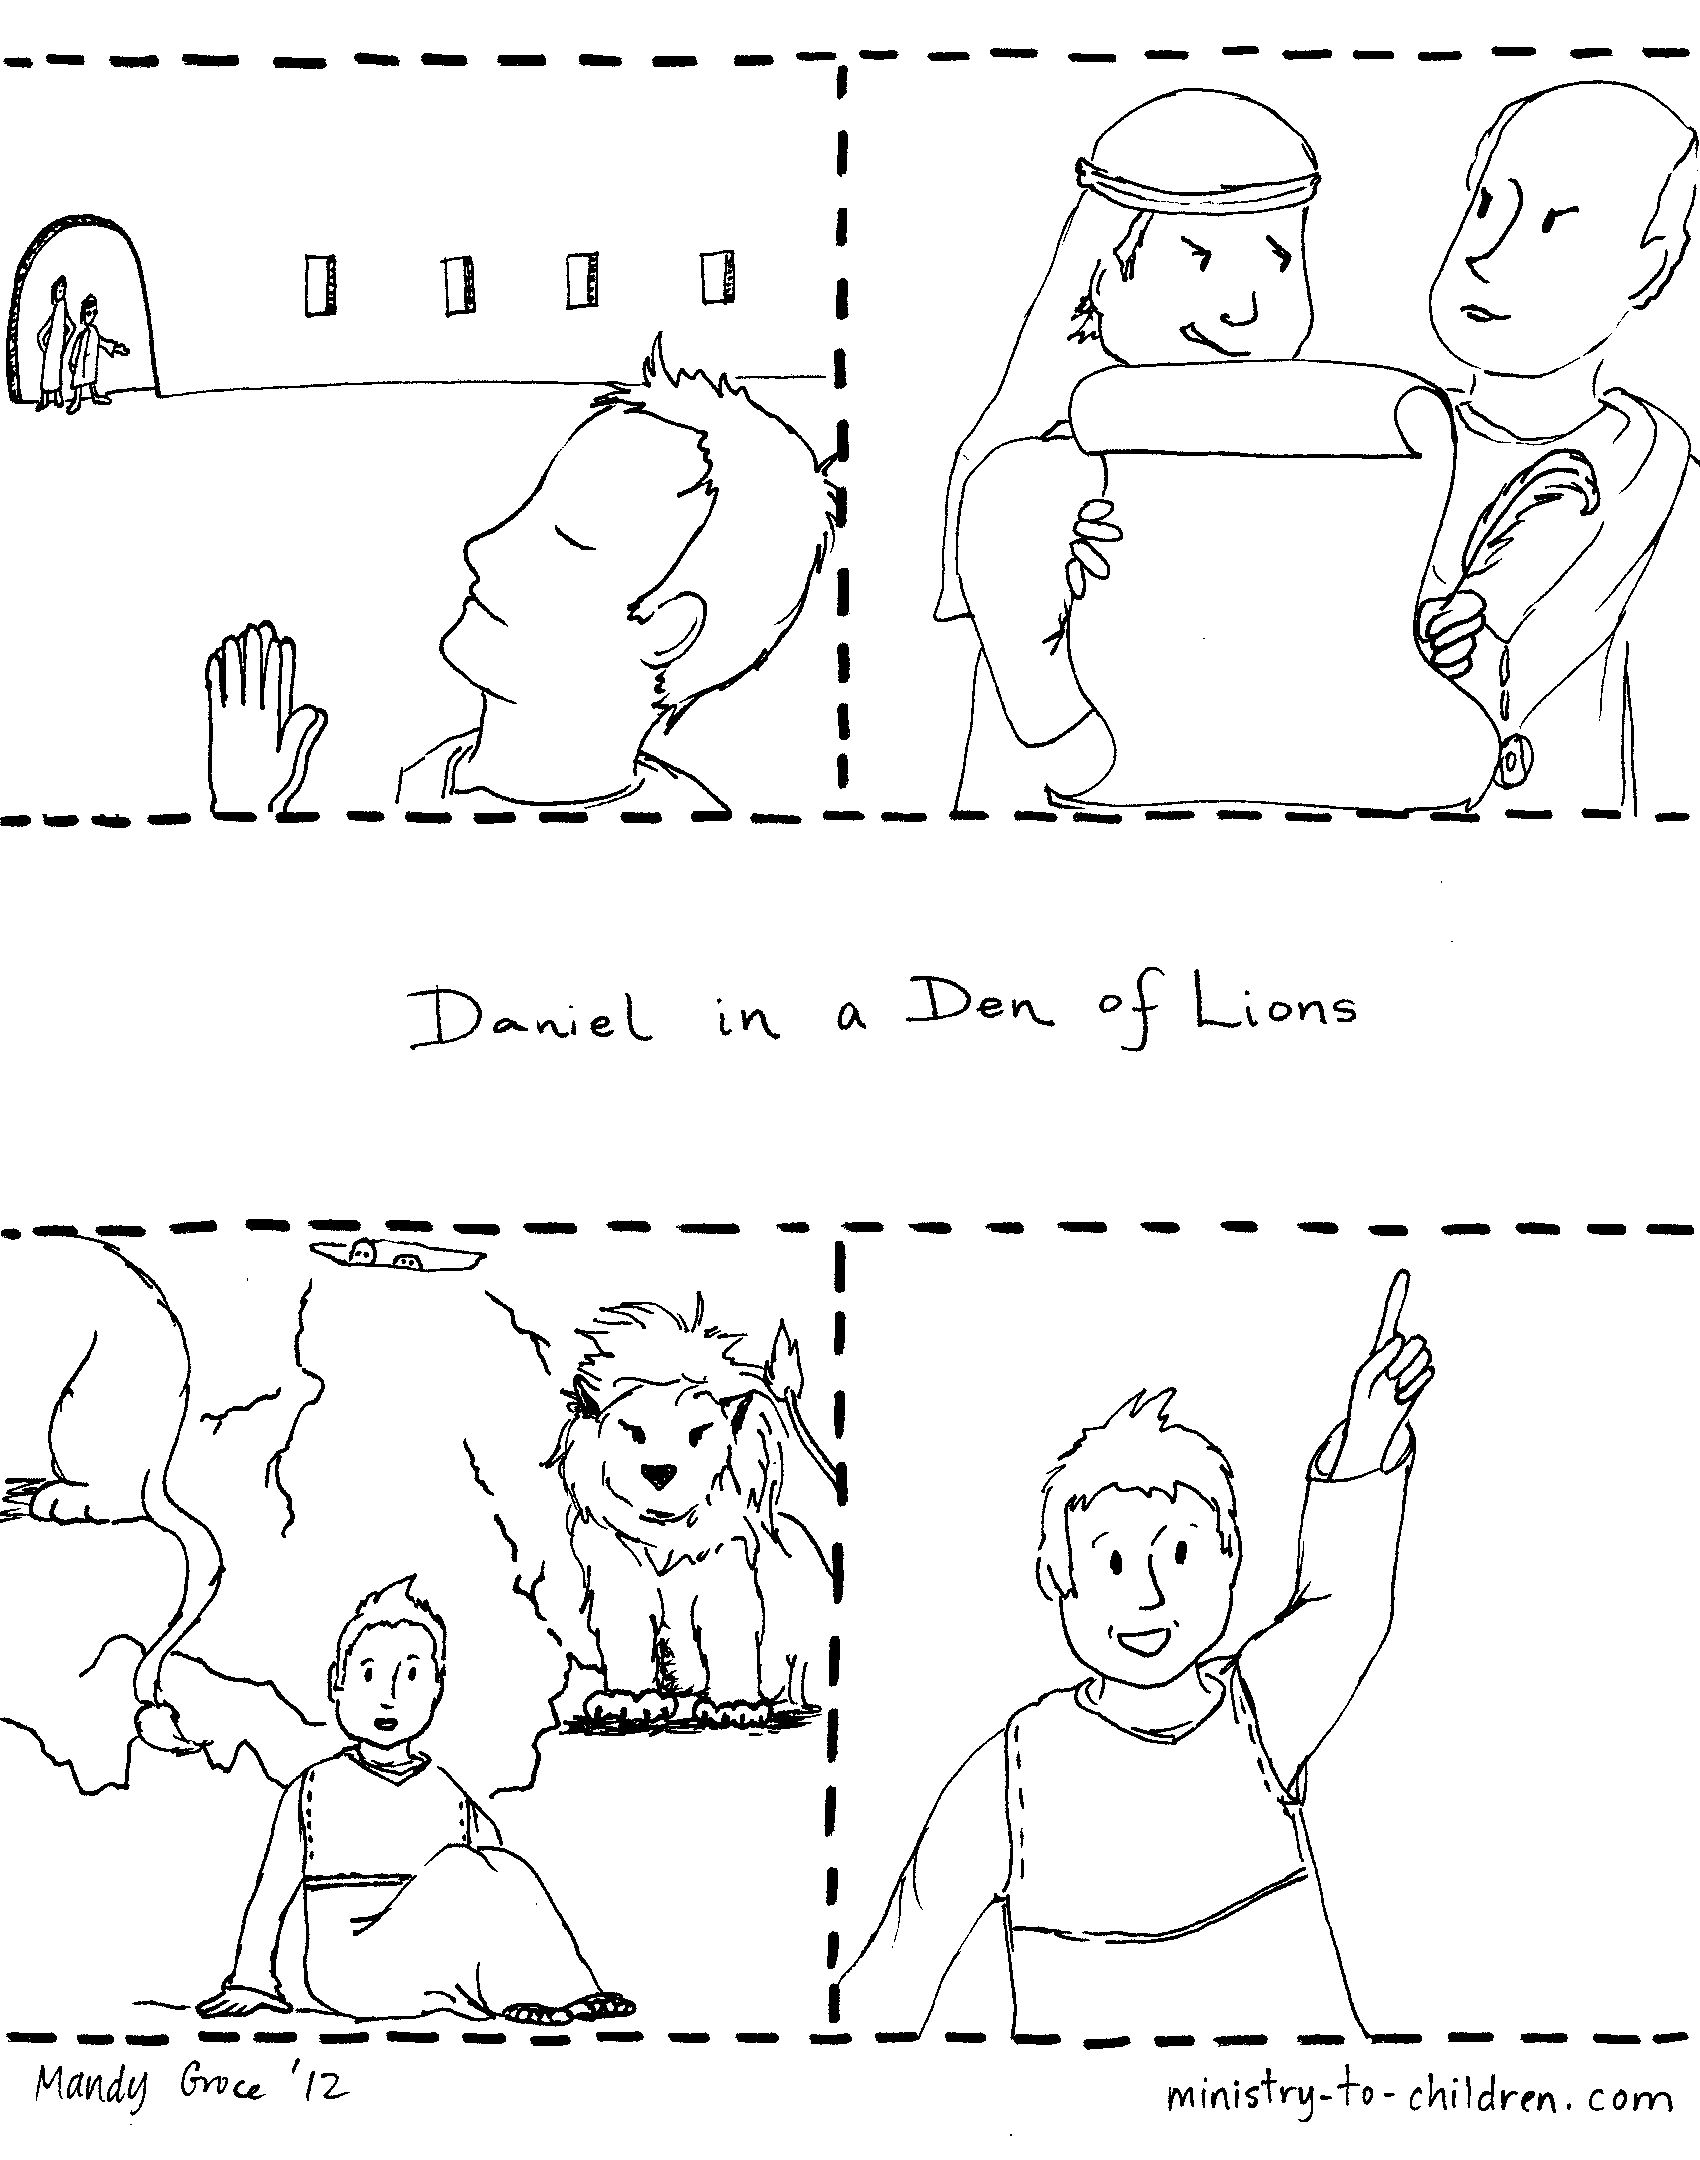 Free printable coloring pages of daniel in the lions den - Daniel Sequence Story Coloring Page Lots Of Ot Colouring Pages Here